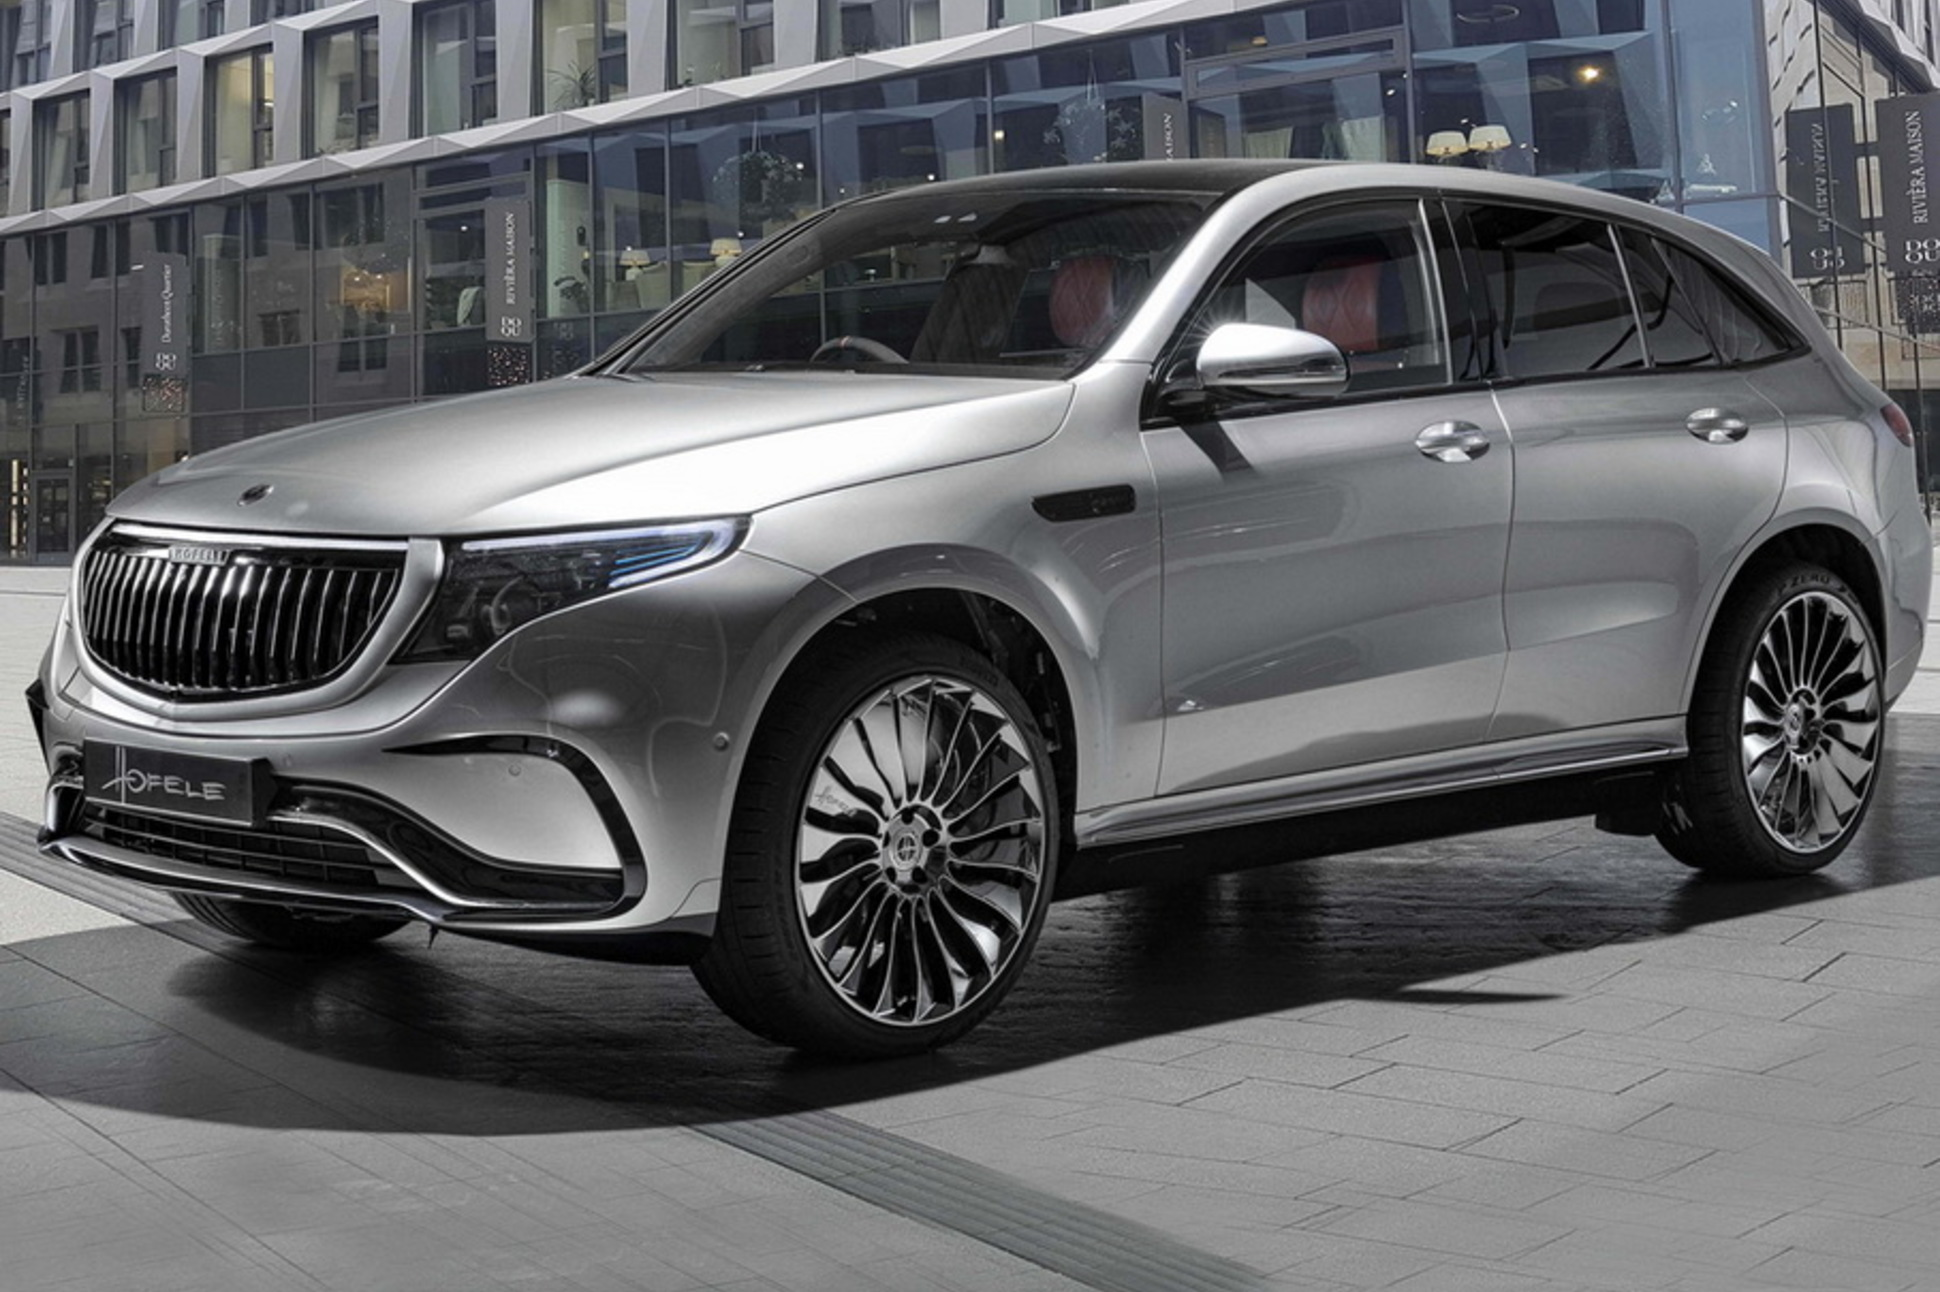 German tuner Hofele Design has unveiled what it calls the HEQC, a luxury electric SUV with Maybach styling and the stock EQC at the core.